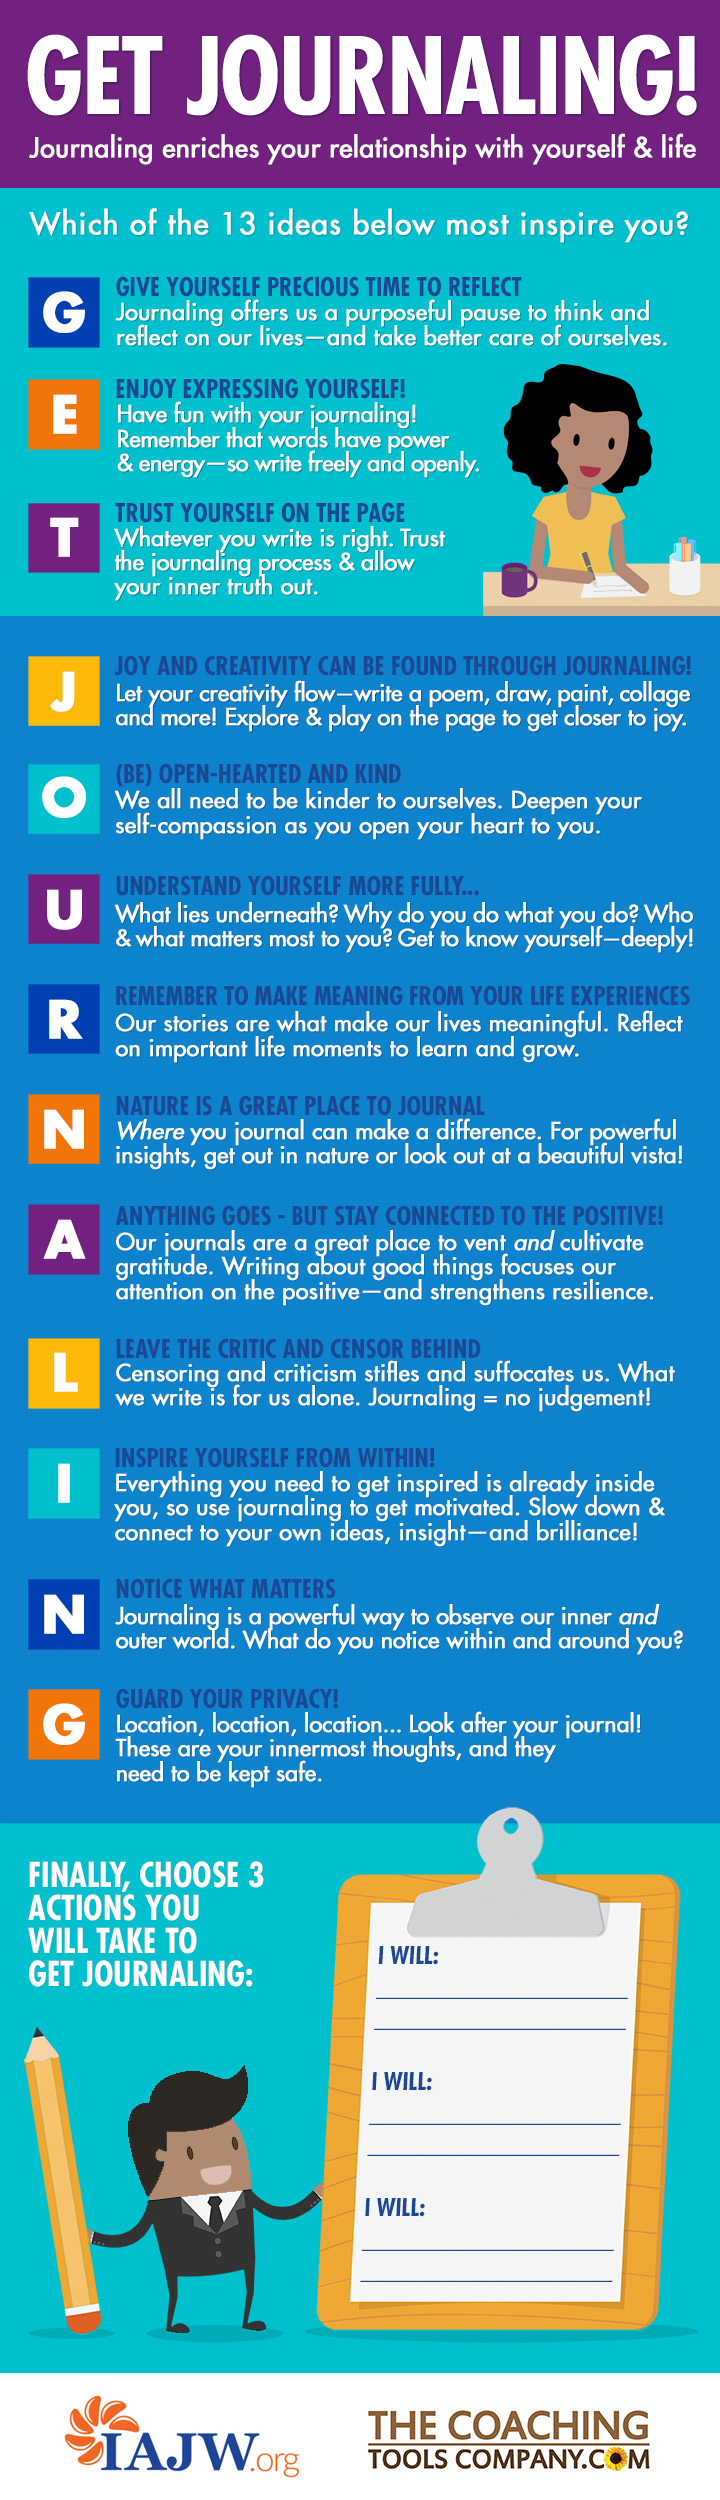 GET JOURNALING Tall Infographic